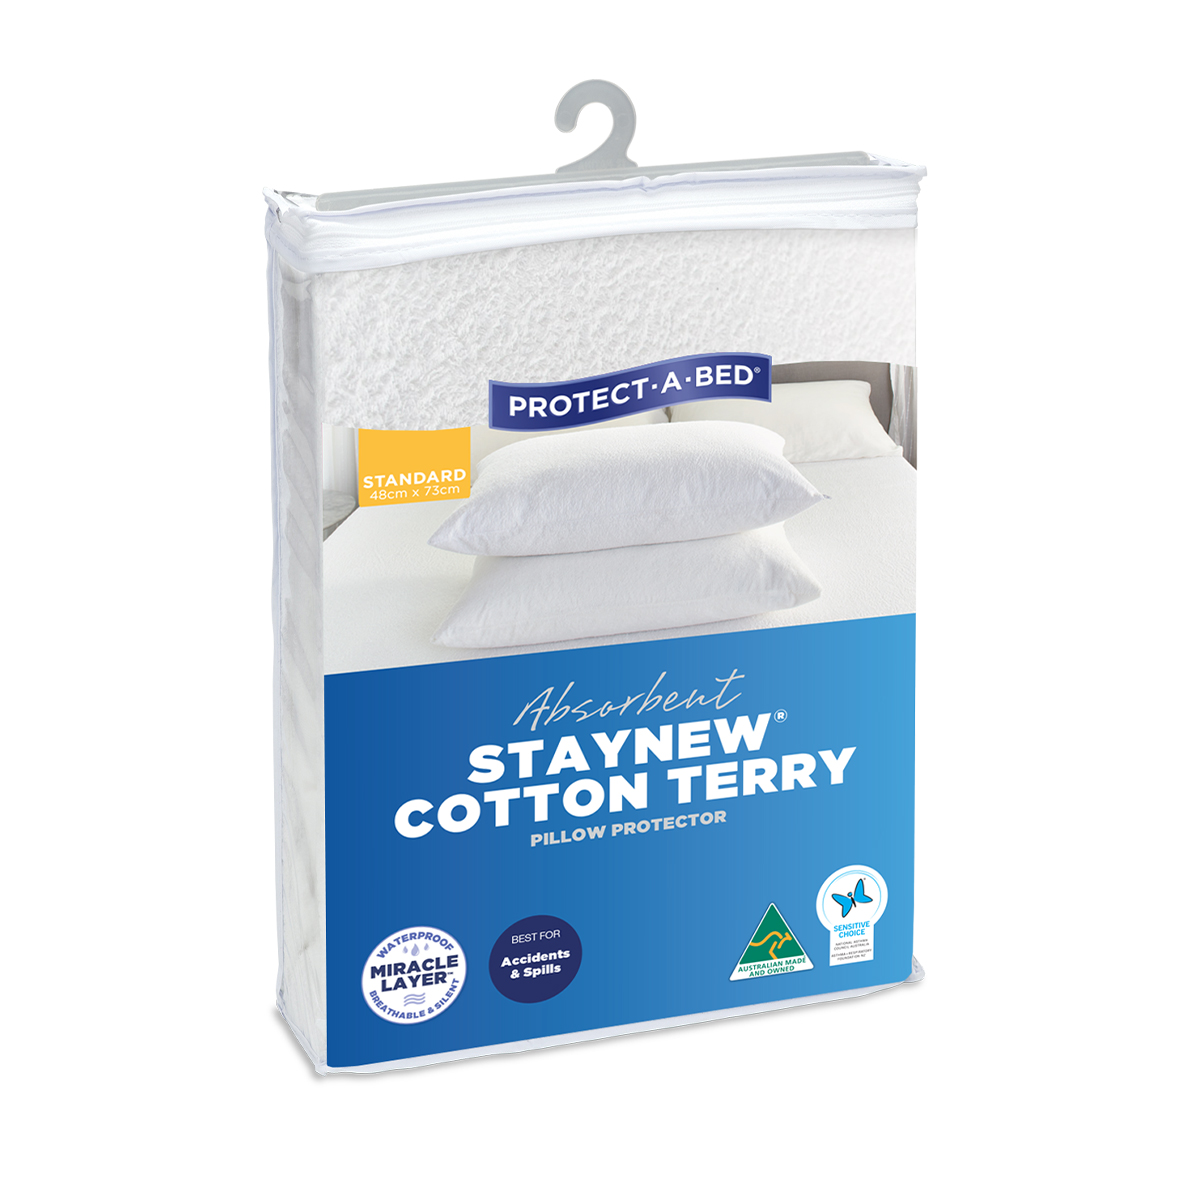 Protect-A-Bed Absorbent Cotton Terry Staynew Waterproof Pillow Protector